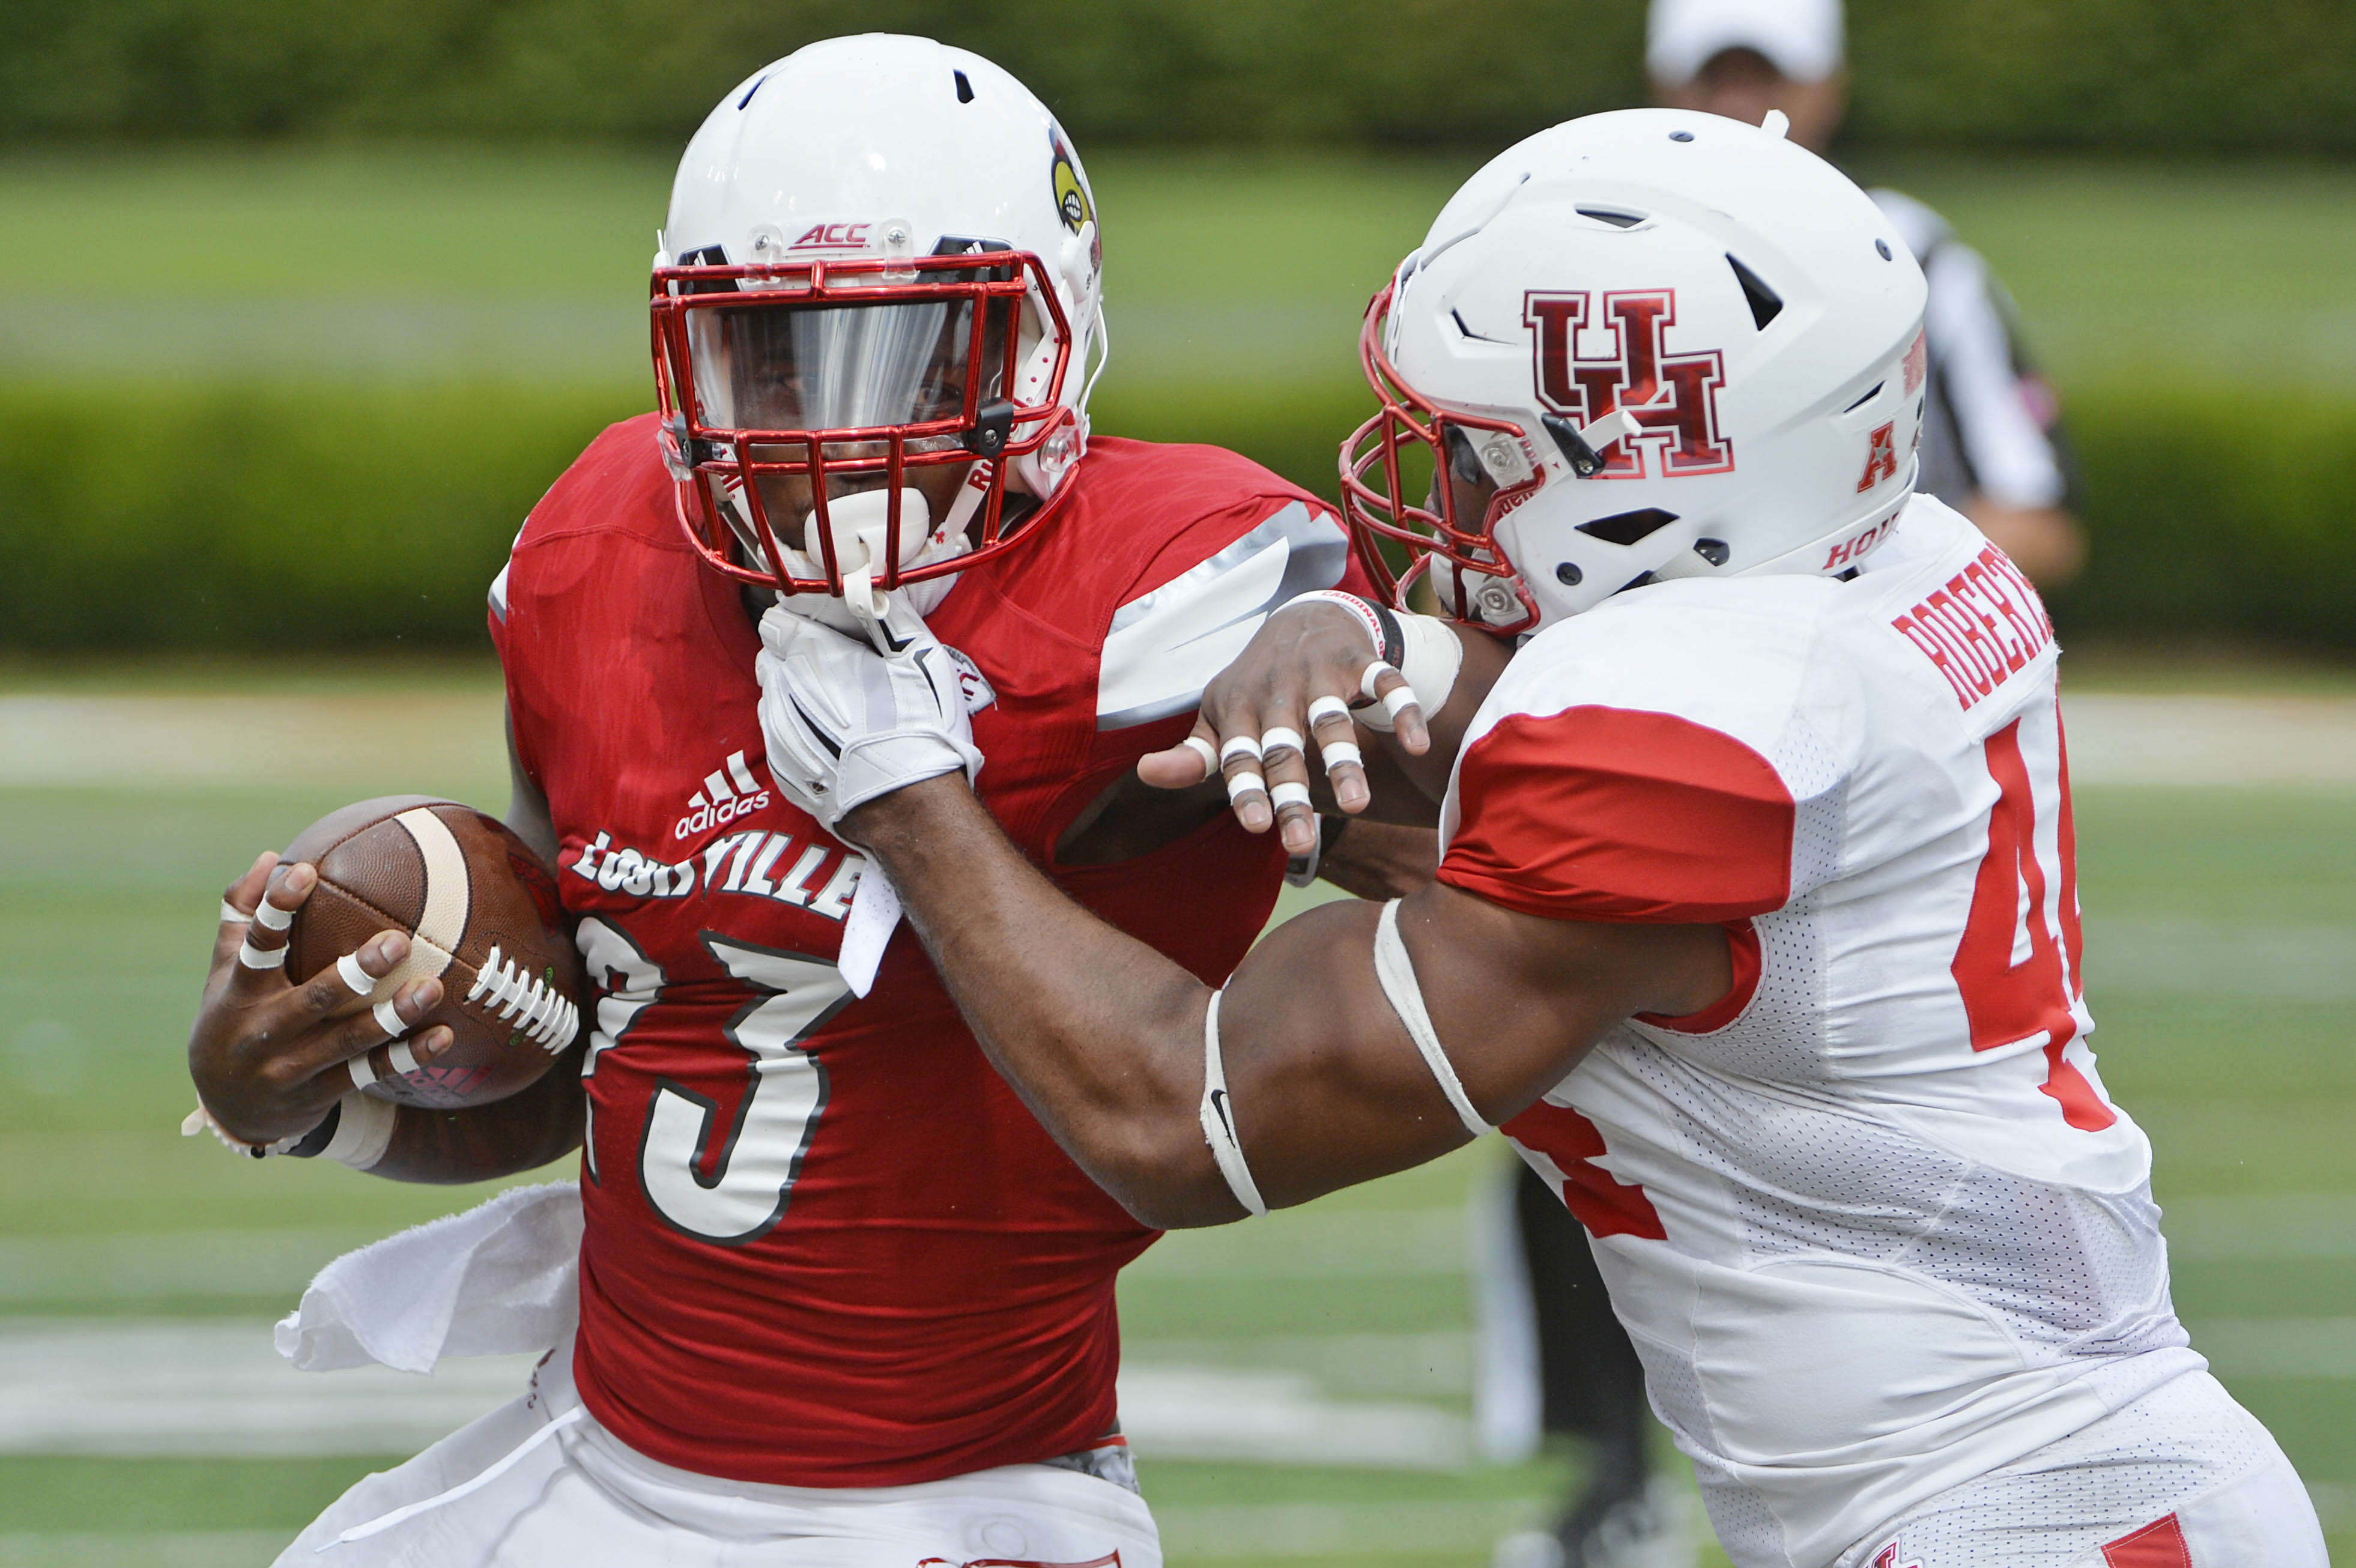 Louisville vs. Houston is an example of college football scheduling going right